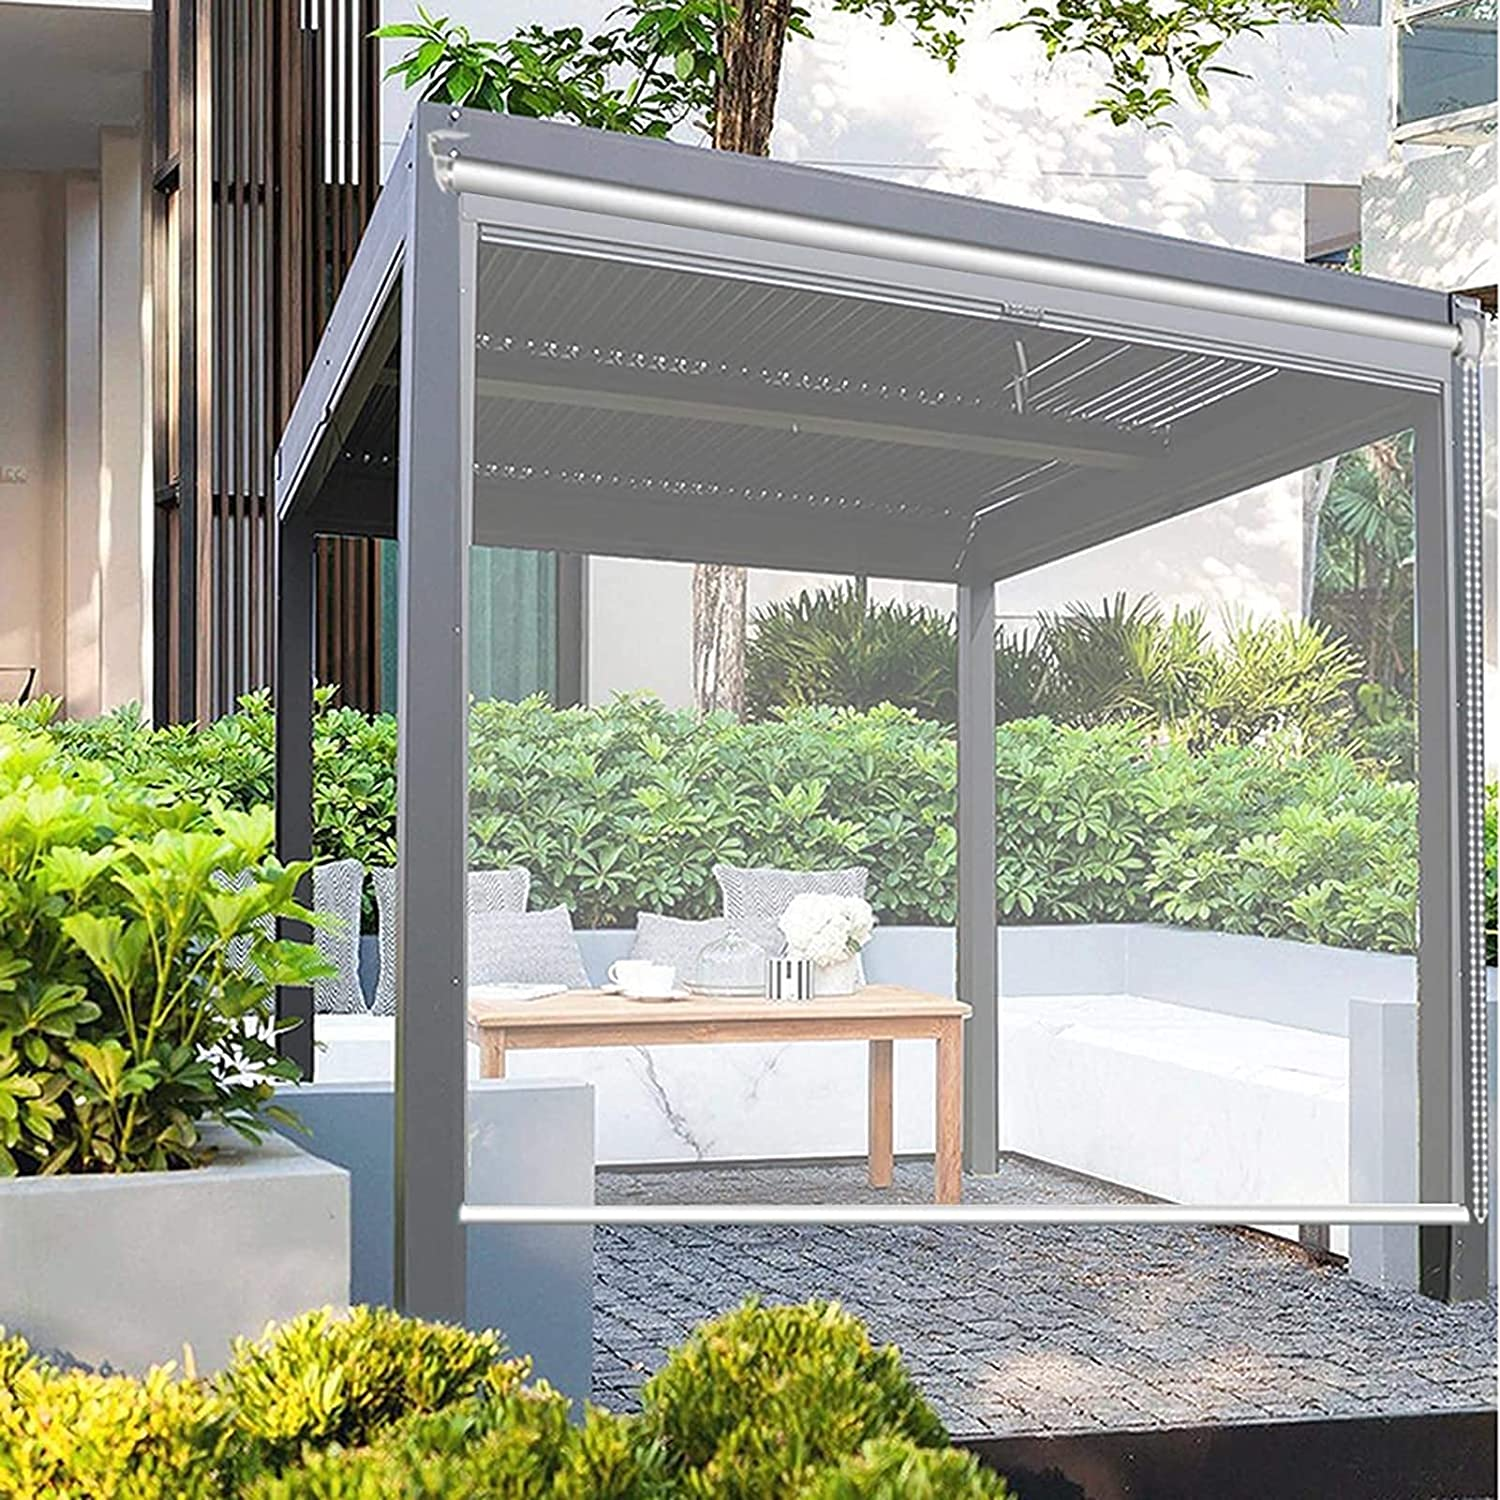 Clear Brand Cheap Sale Venue Roller Shades for Outdoors 160cm 140 Waterproof Wide discount 150